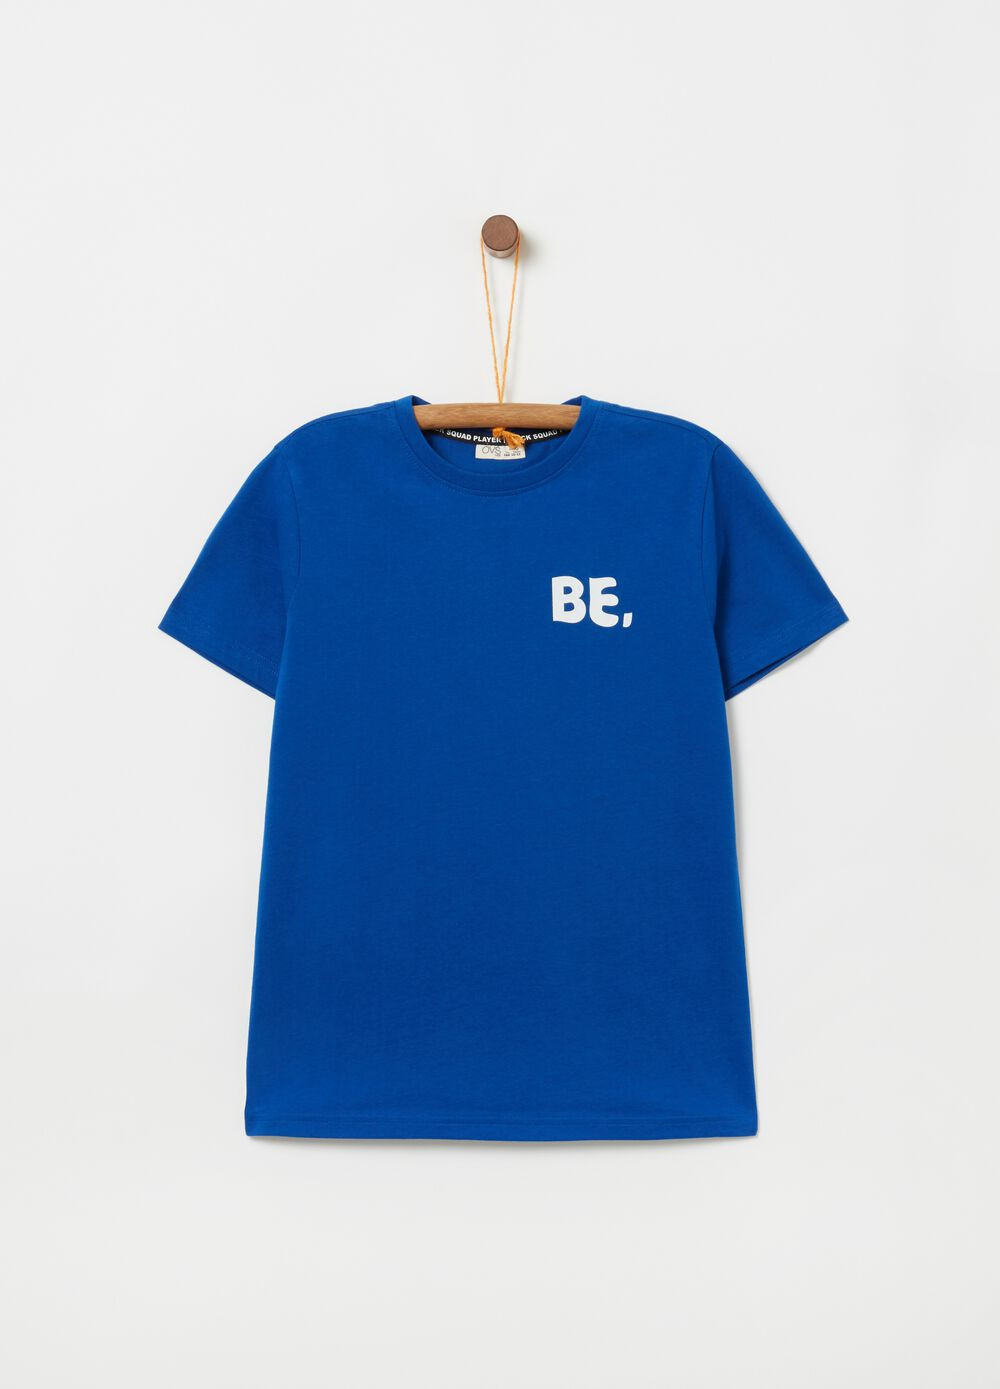 100% cotton T-shirt with print front and back